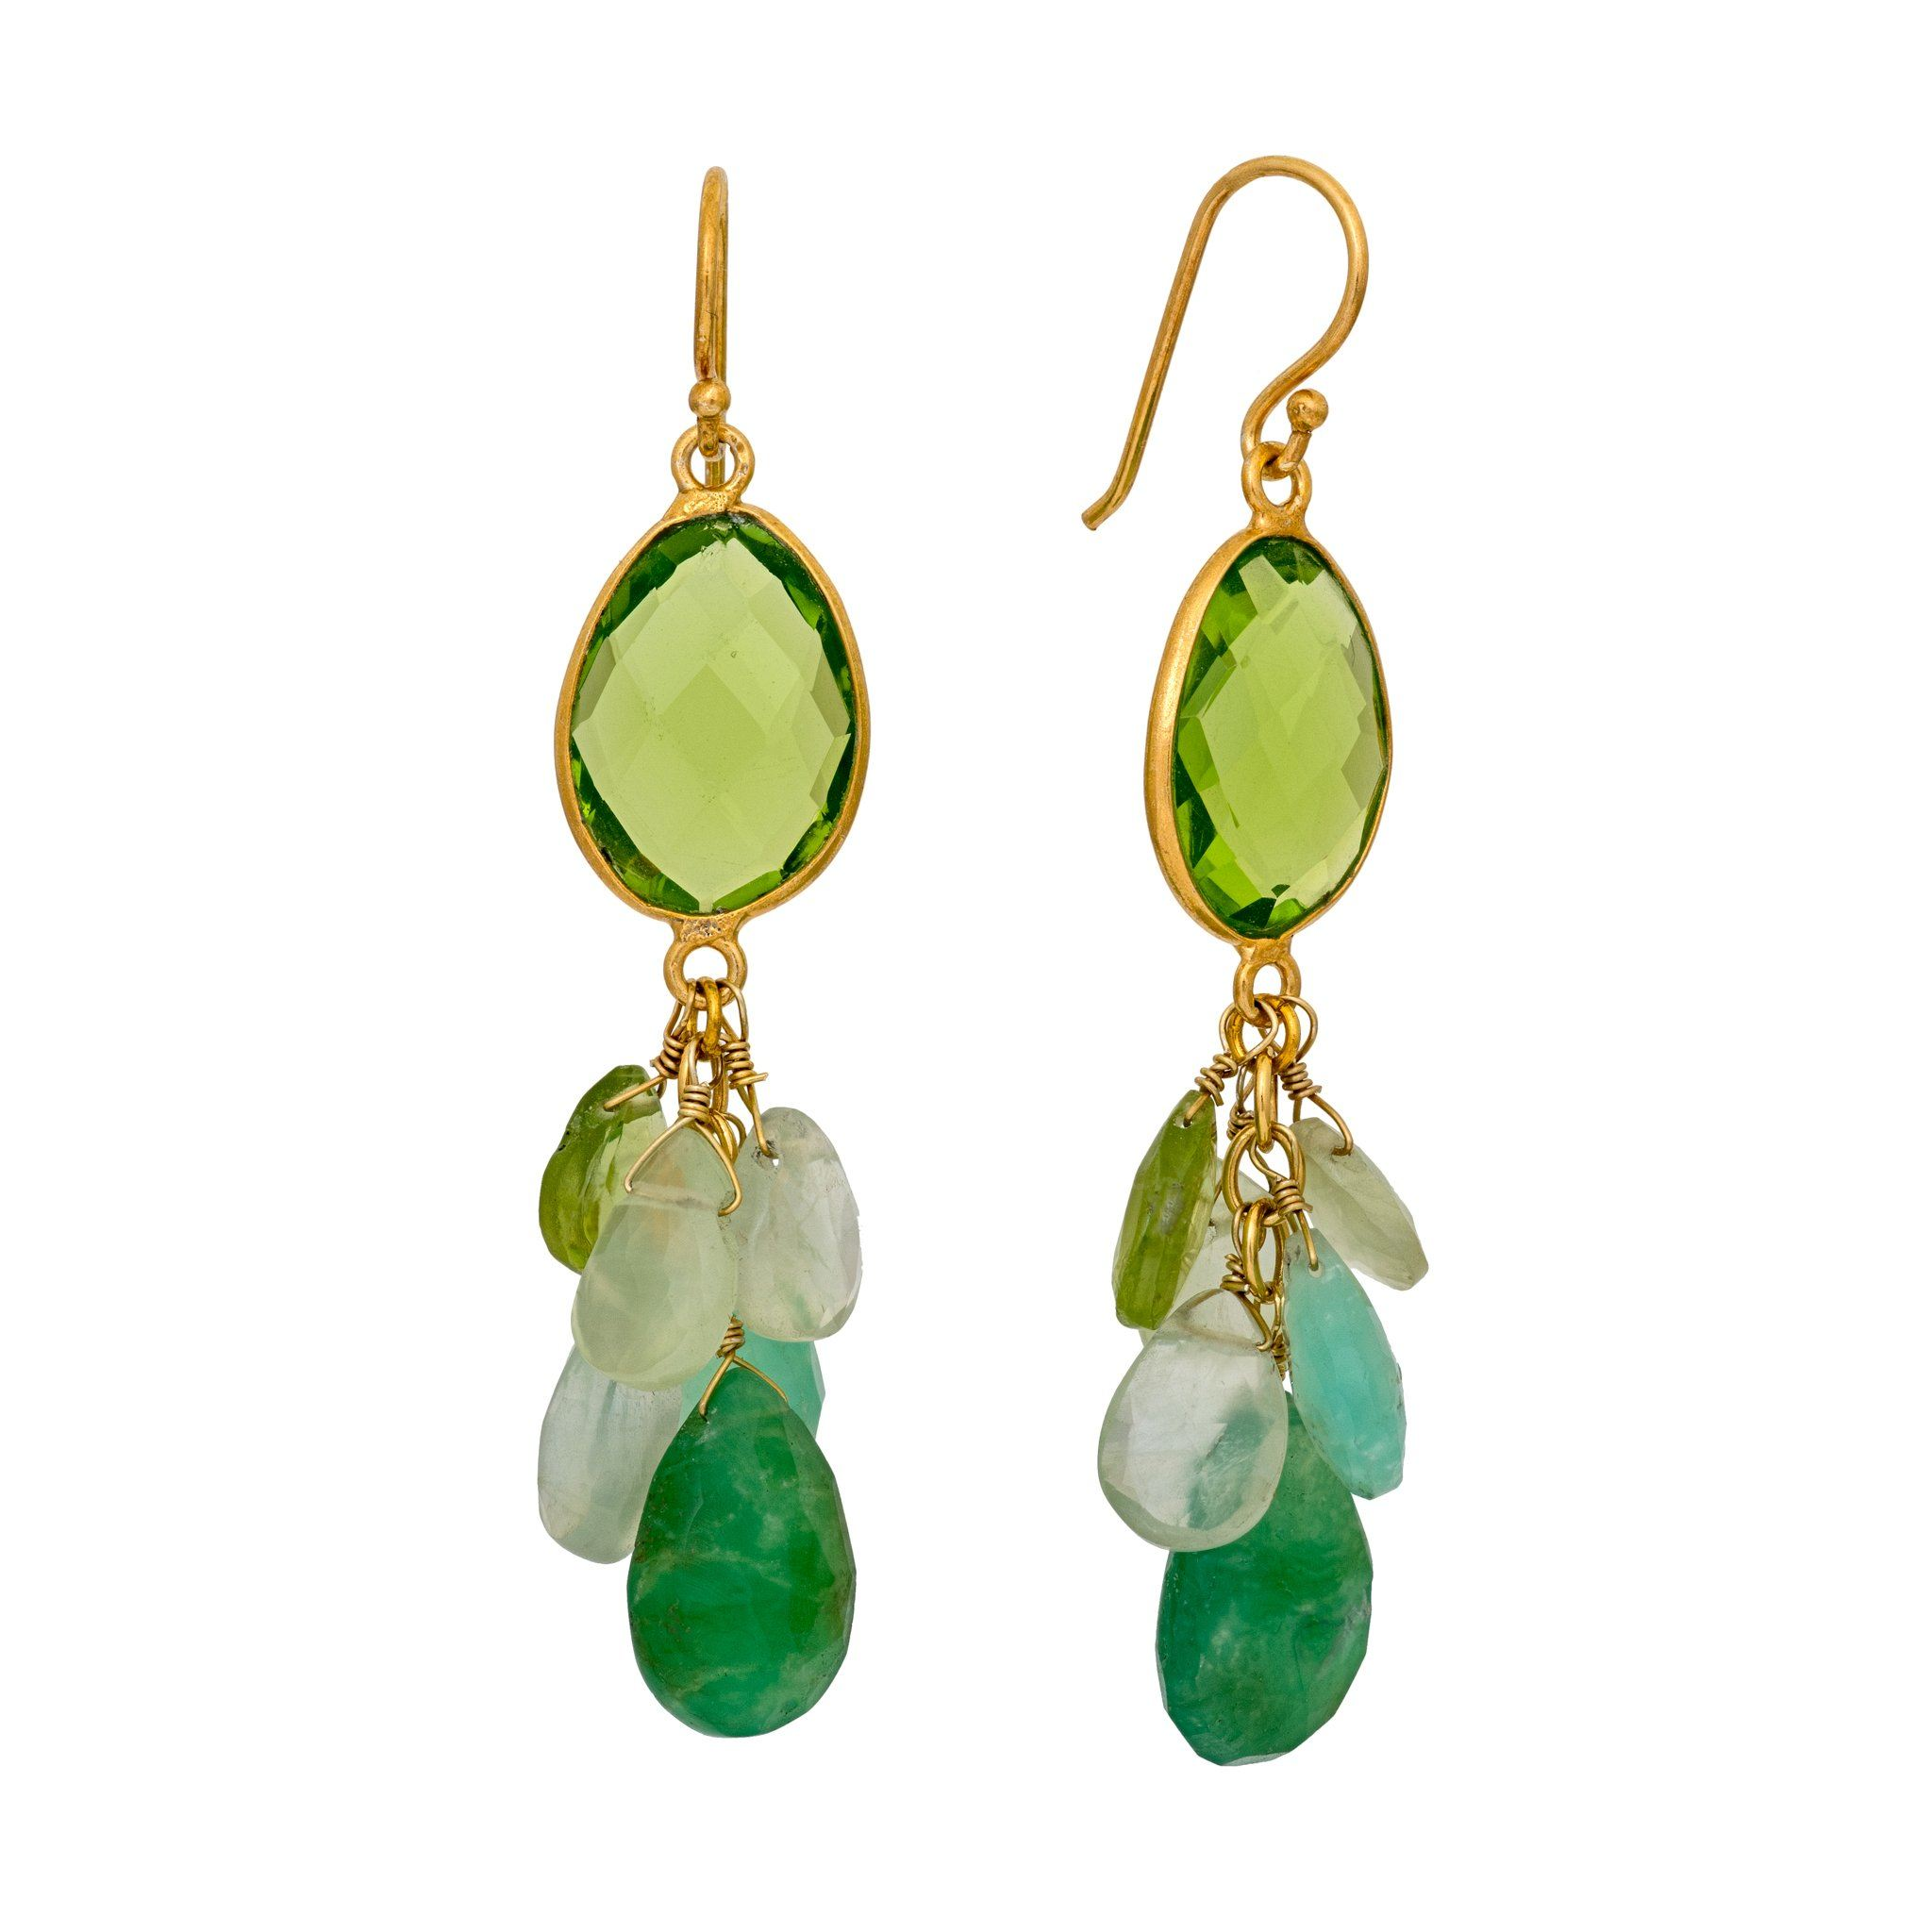 LUZ peridot cluster earrings - MadamSiam